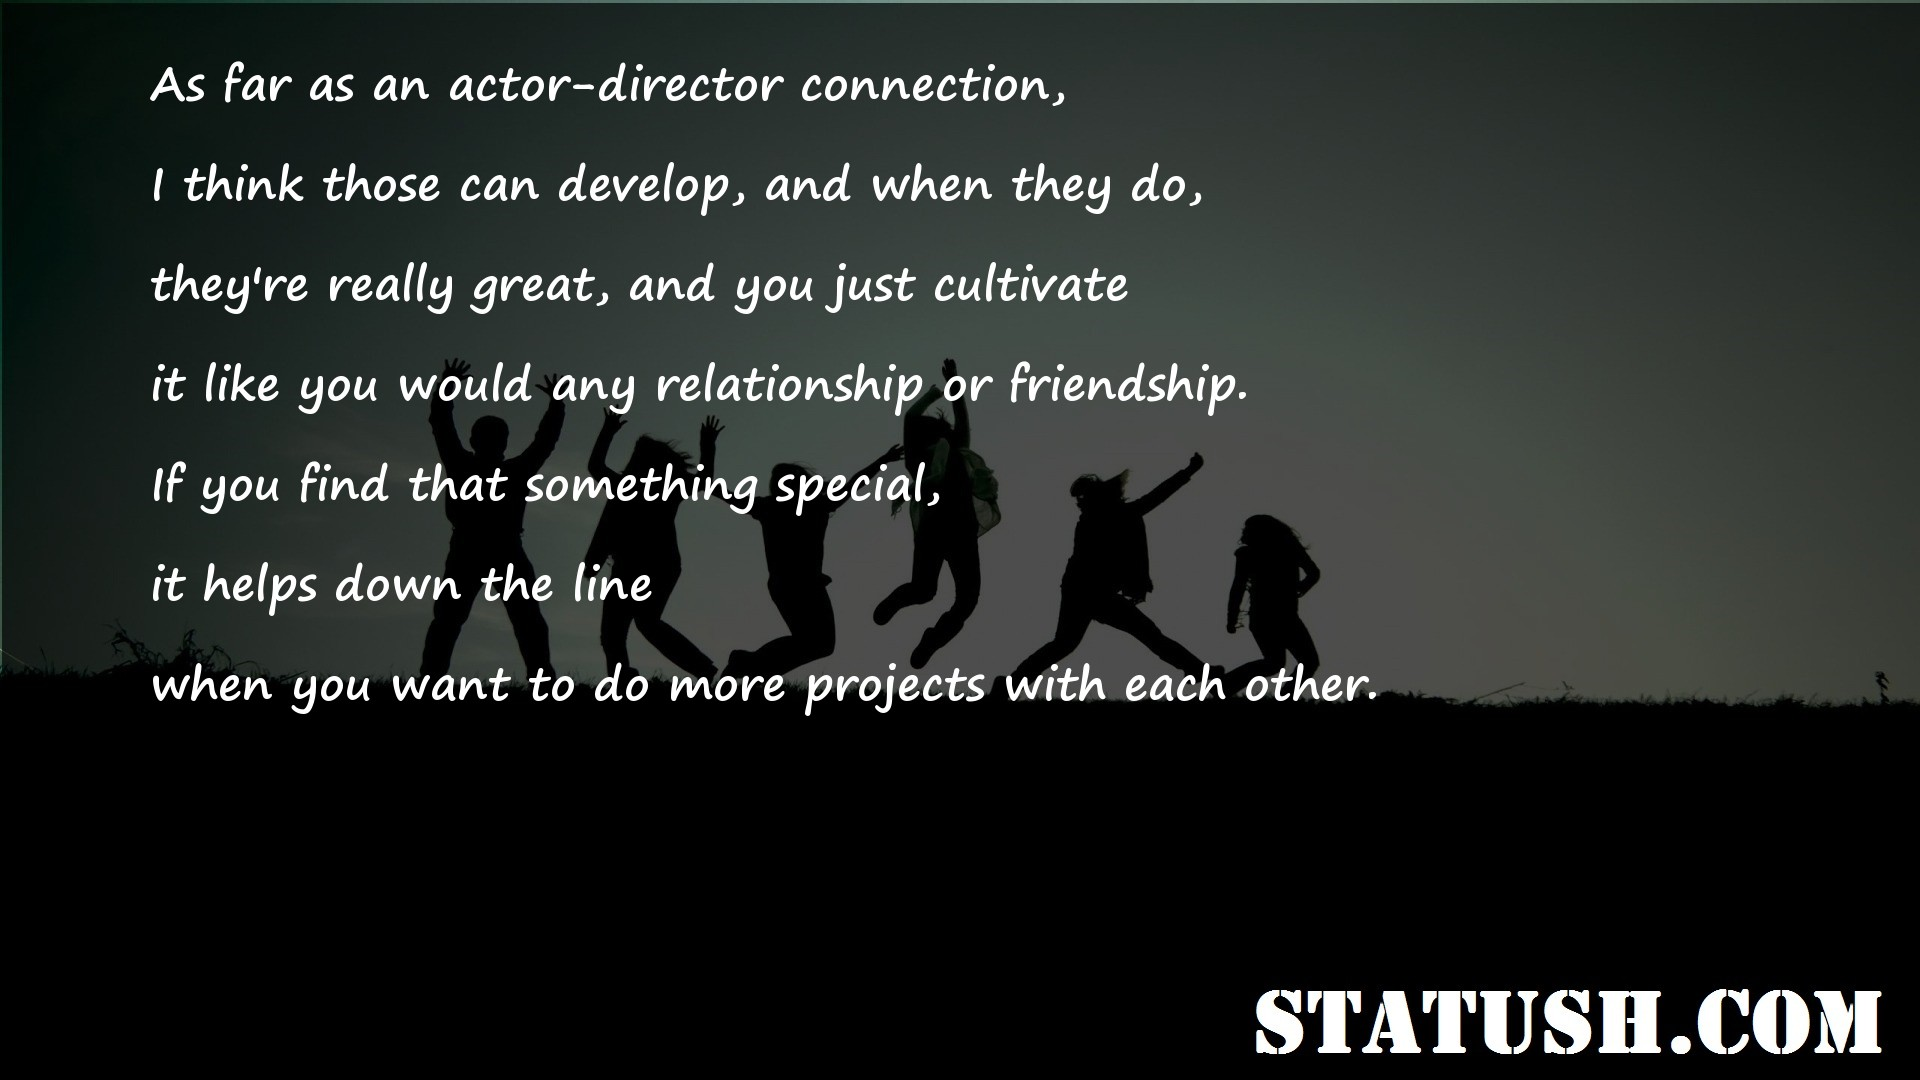 As far as an actor director connection